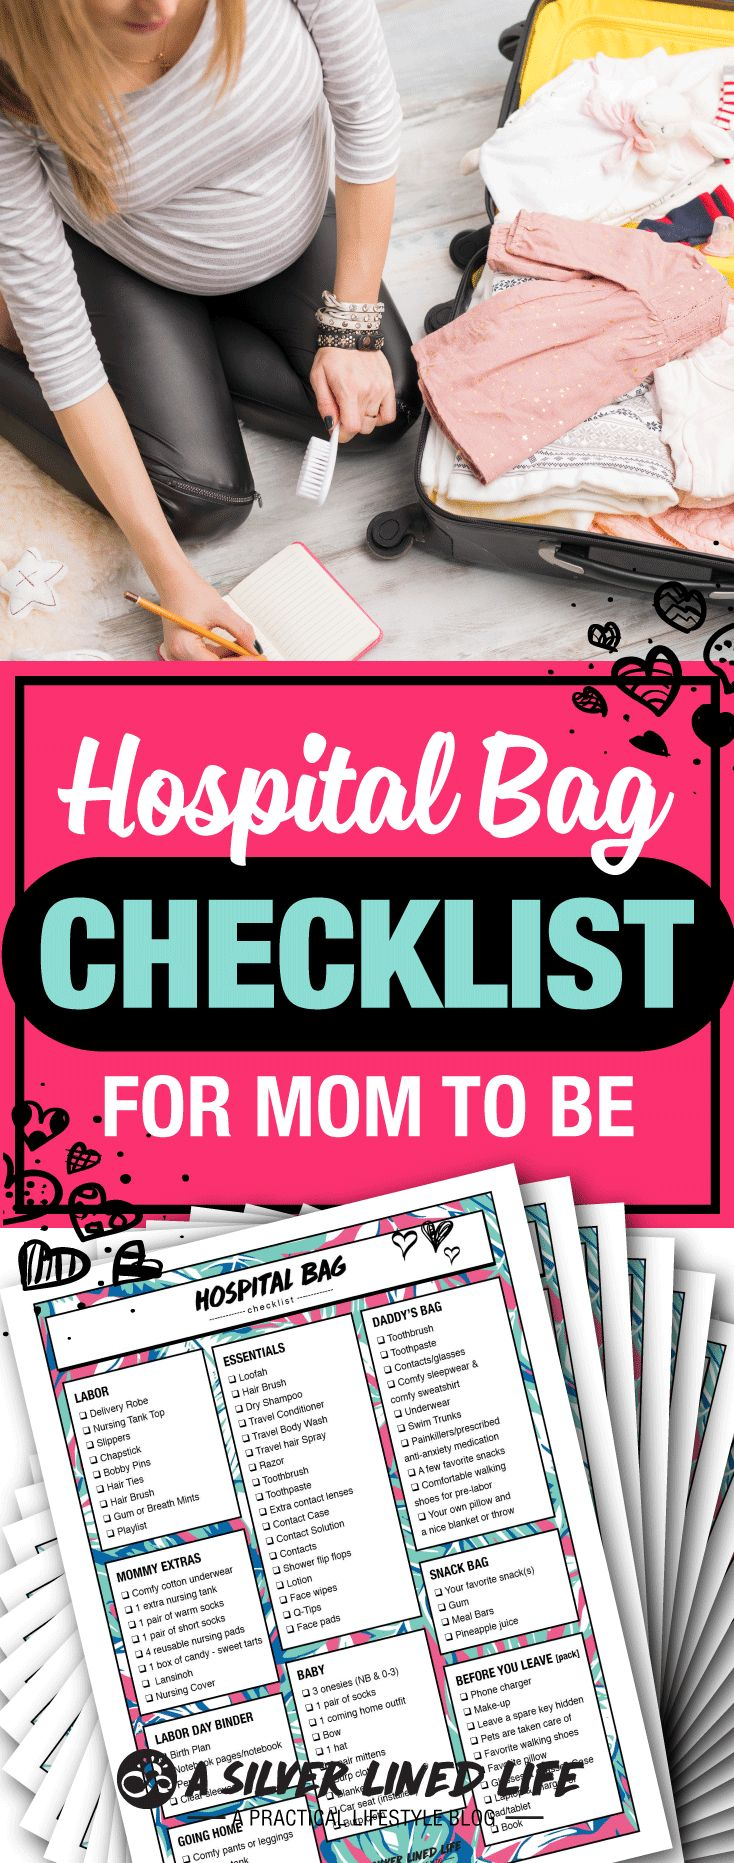 Hospital Bag Checklist, For Mom To Be: FREE Printable! Best packing list for you, your baby and family! A simple, realistic and organized ultimate list.